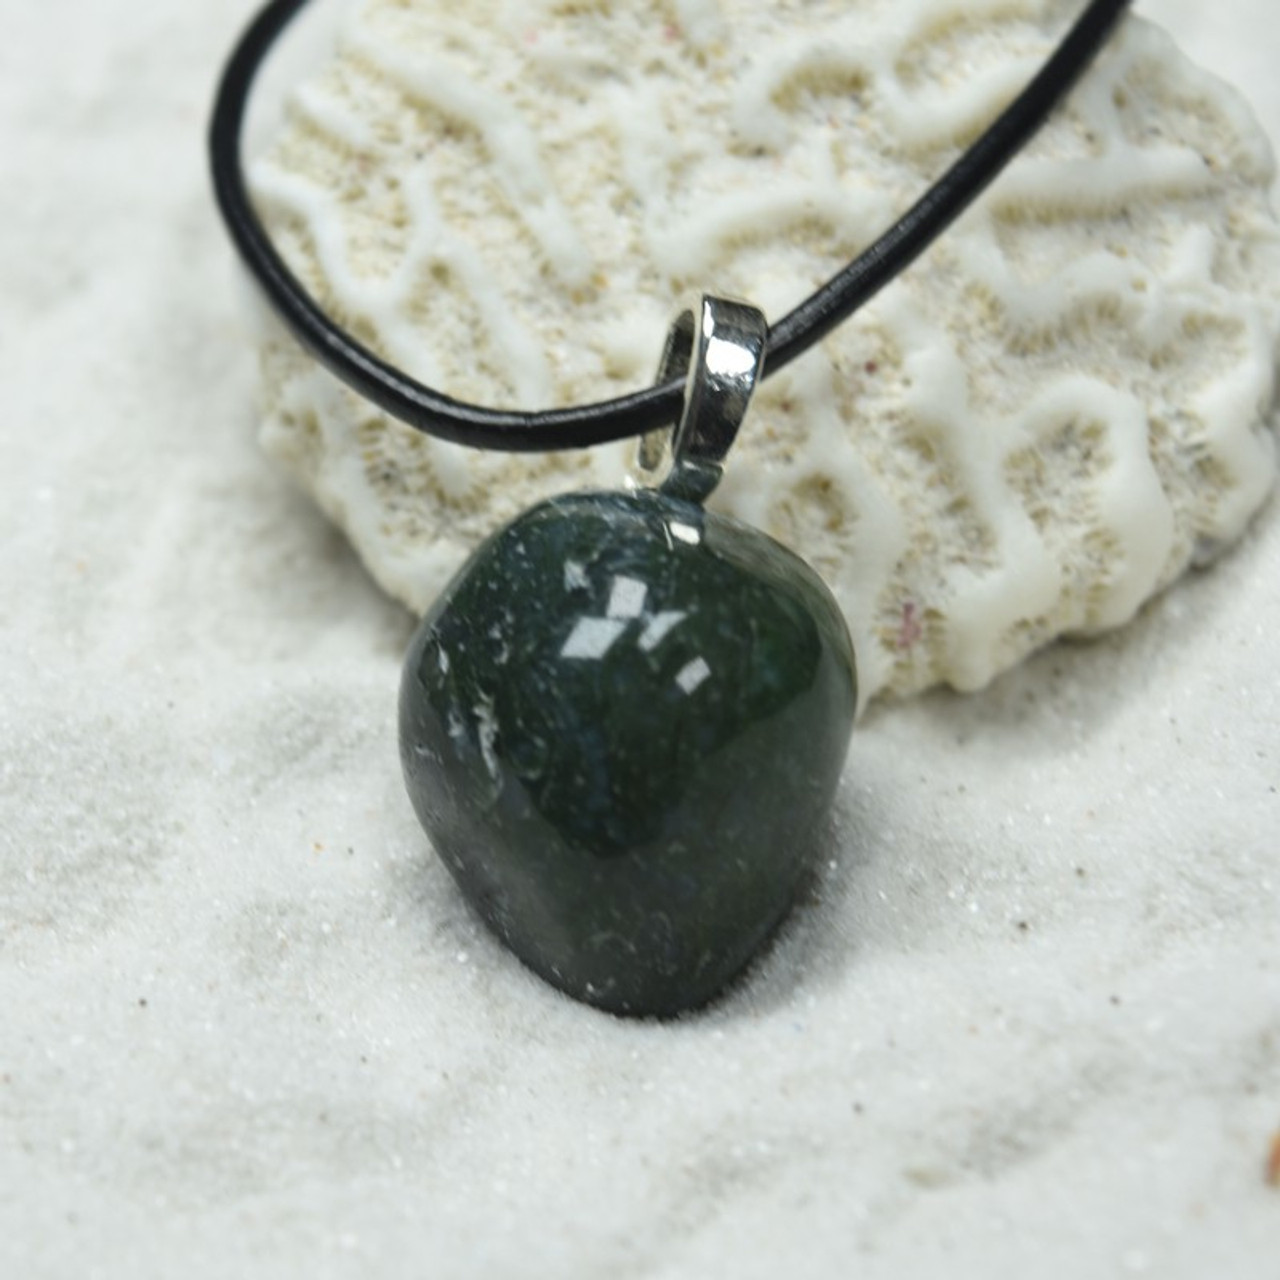 Green Moss Agate Pendant and Necklace